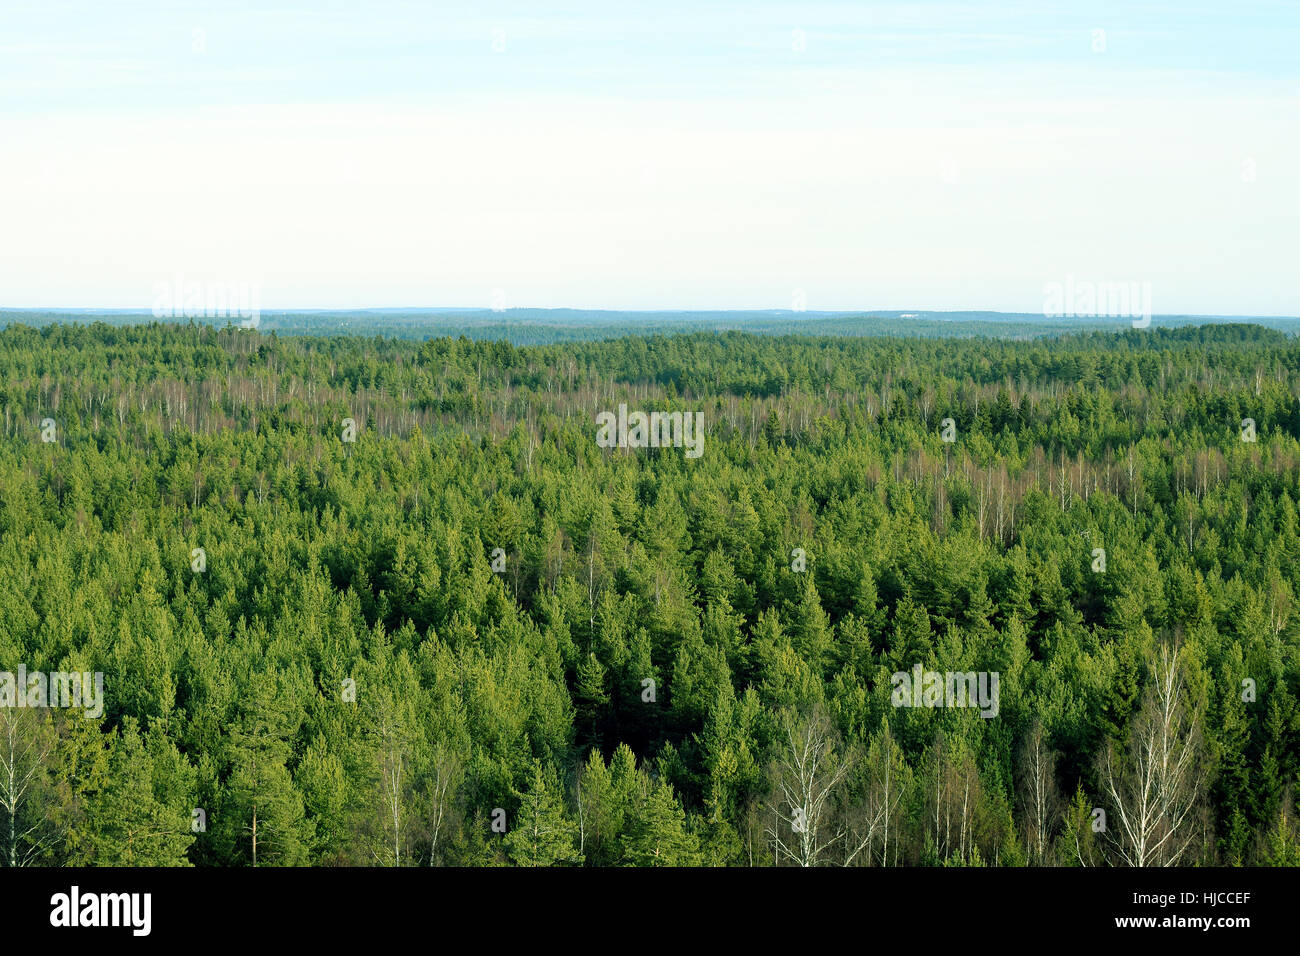 Forest aerial view. Birches, pines and spruces in Southern Finland. - Stock Image